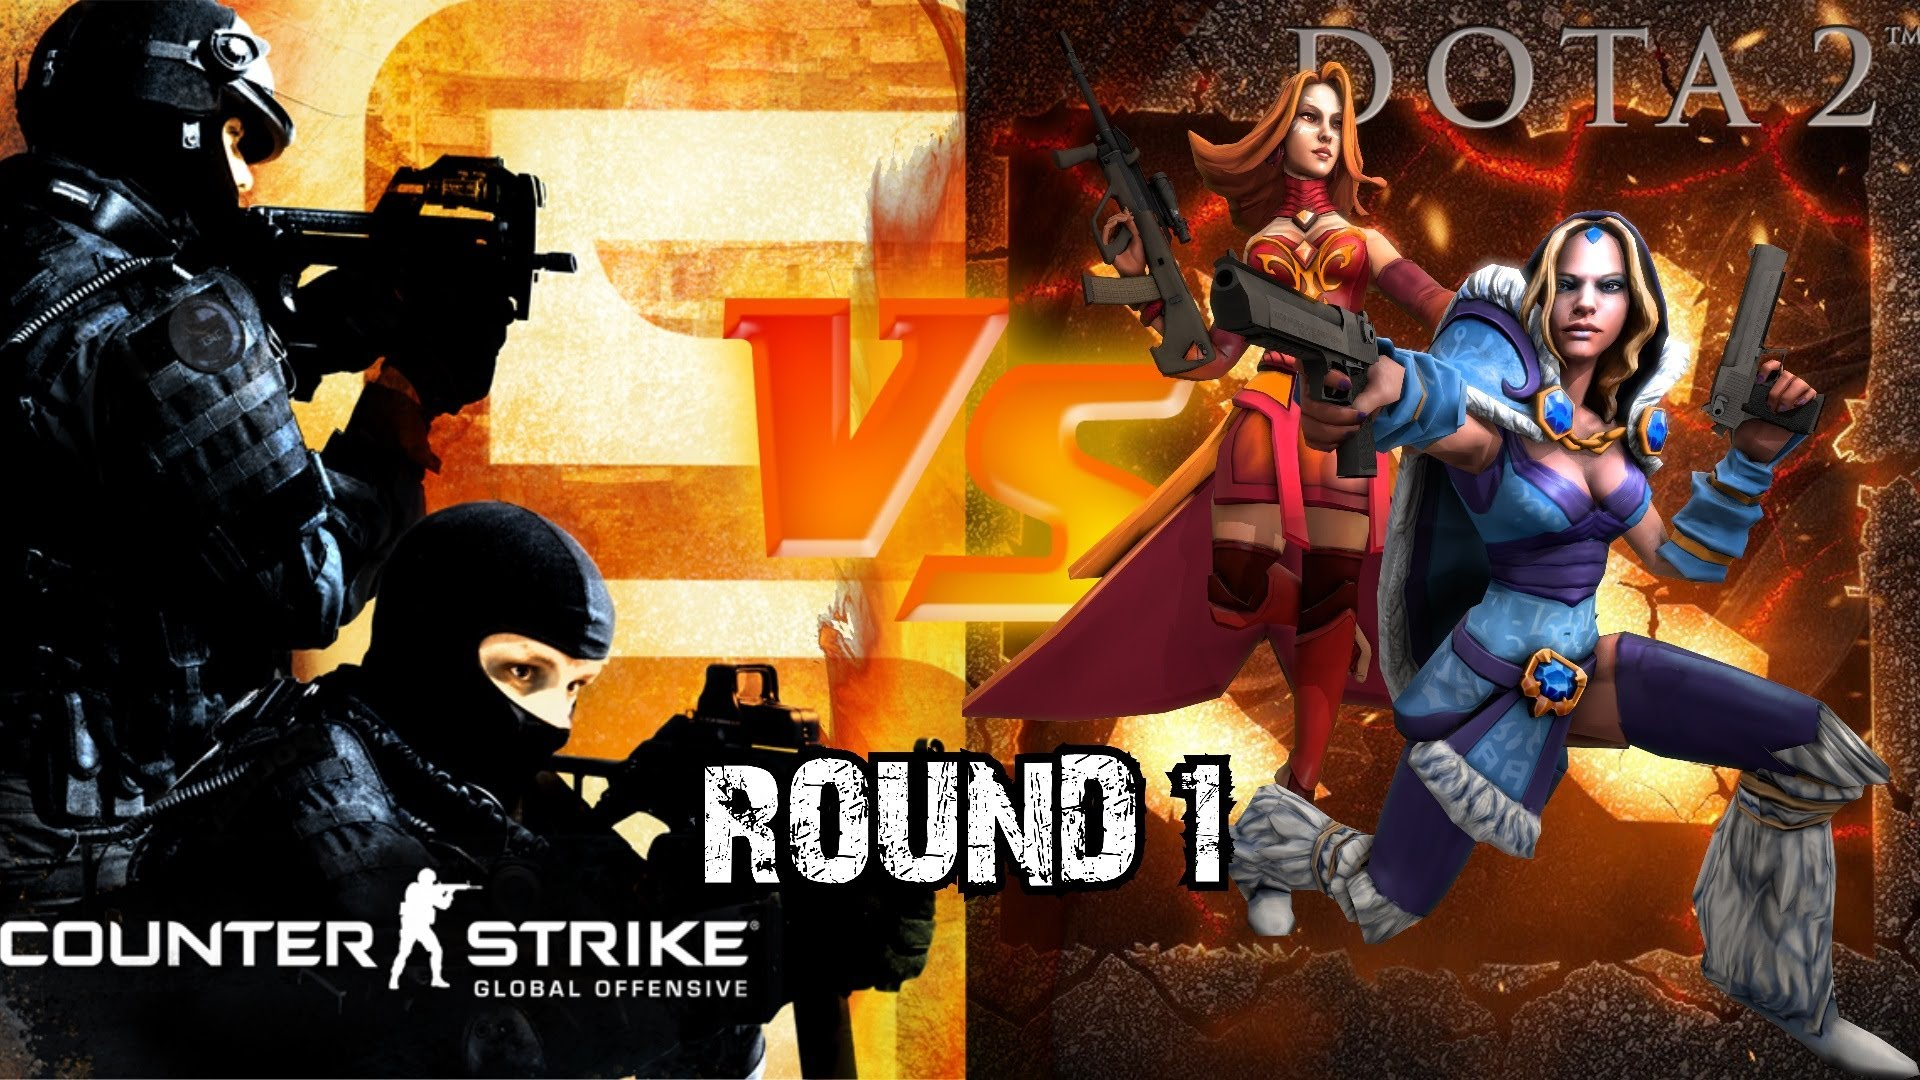 Photo of DOTA 2 vs CS GO, infruntarea secolului in forma video!